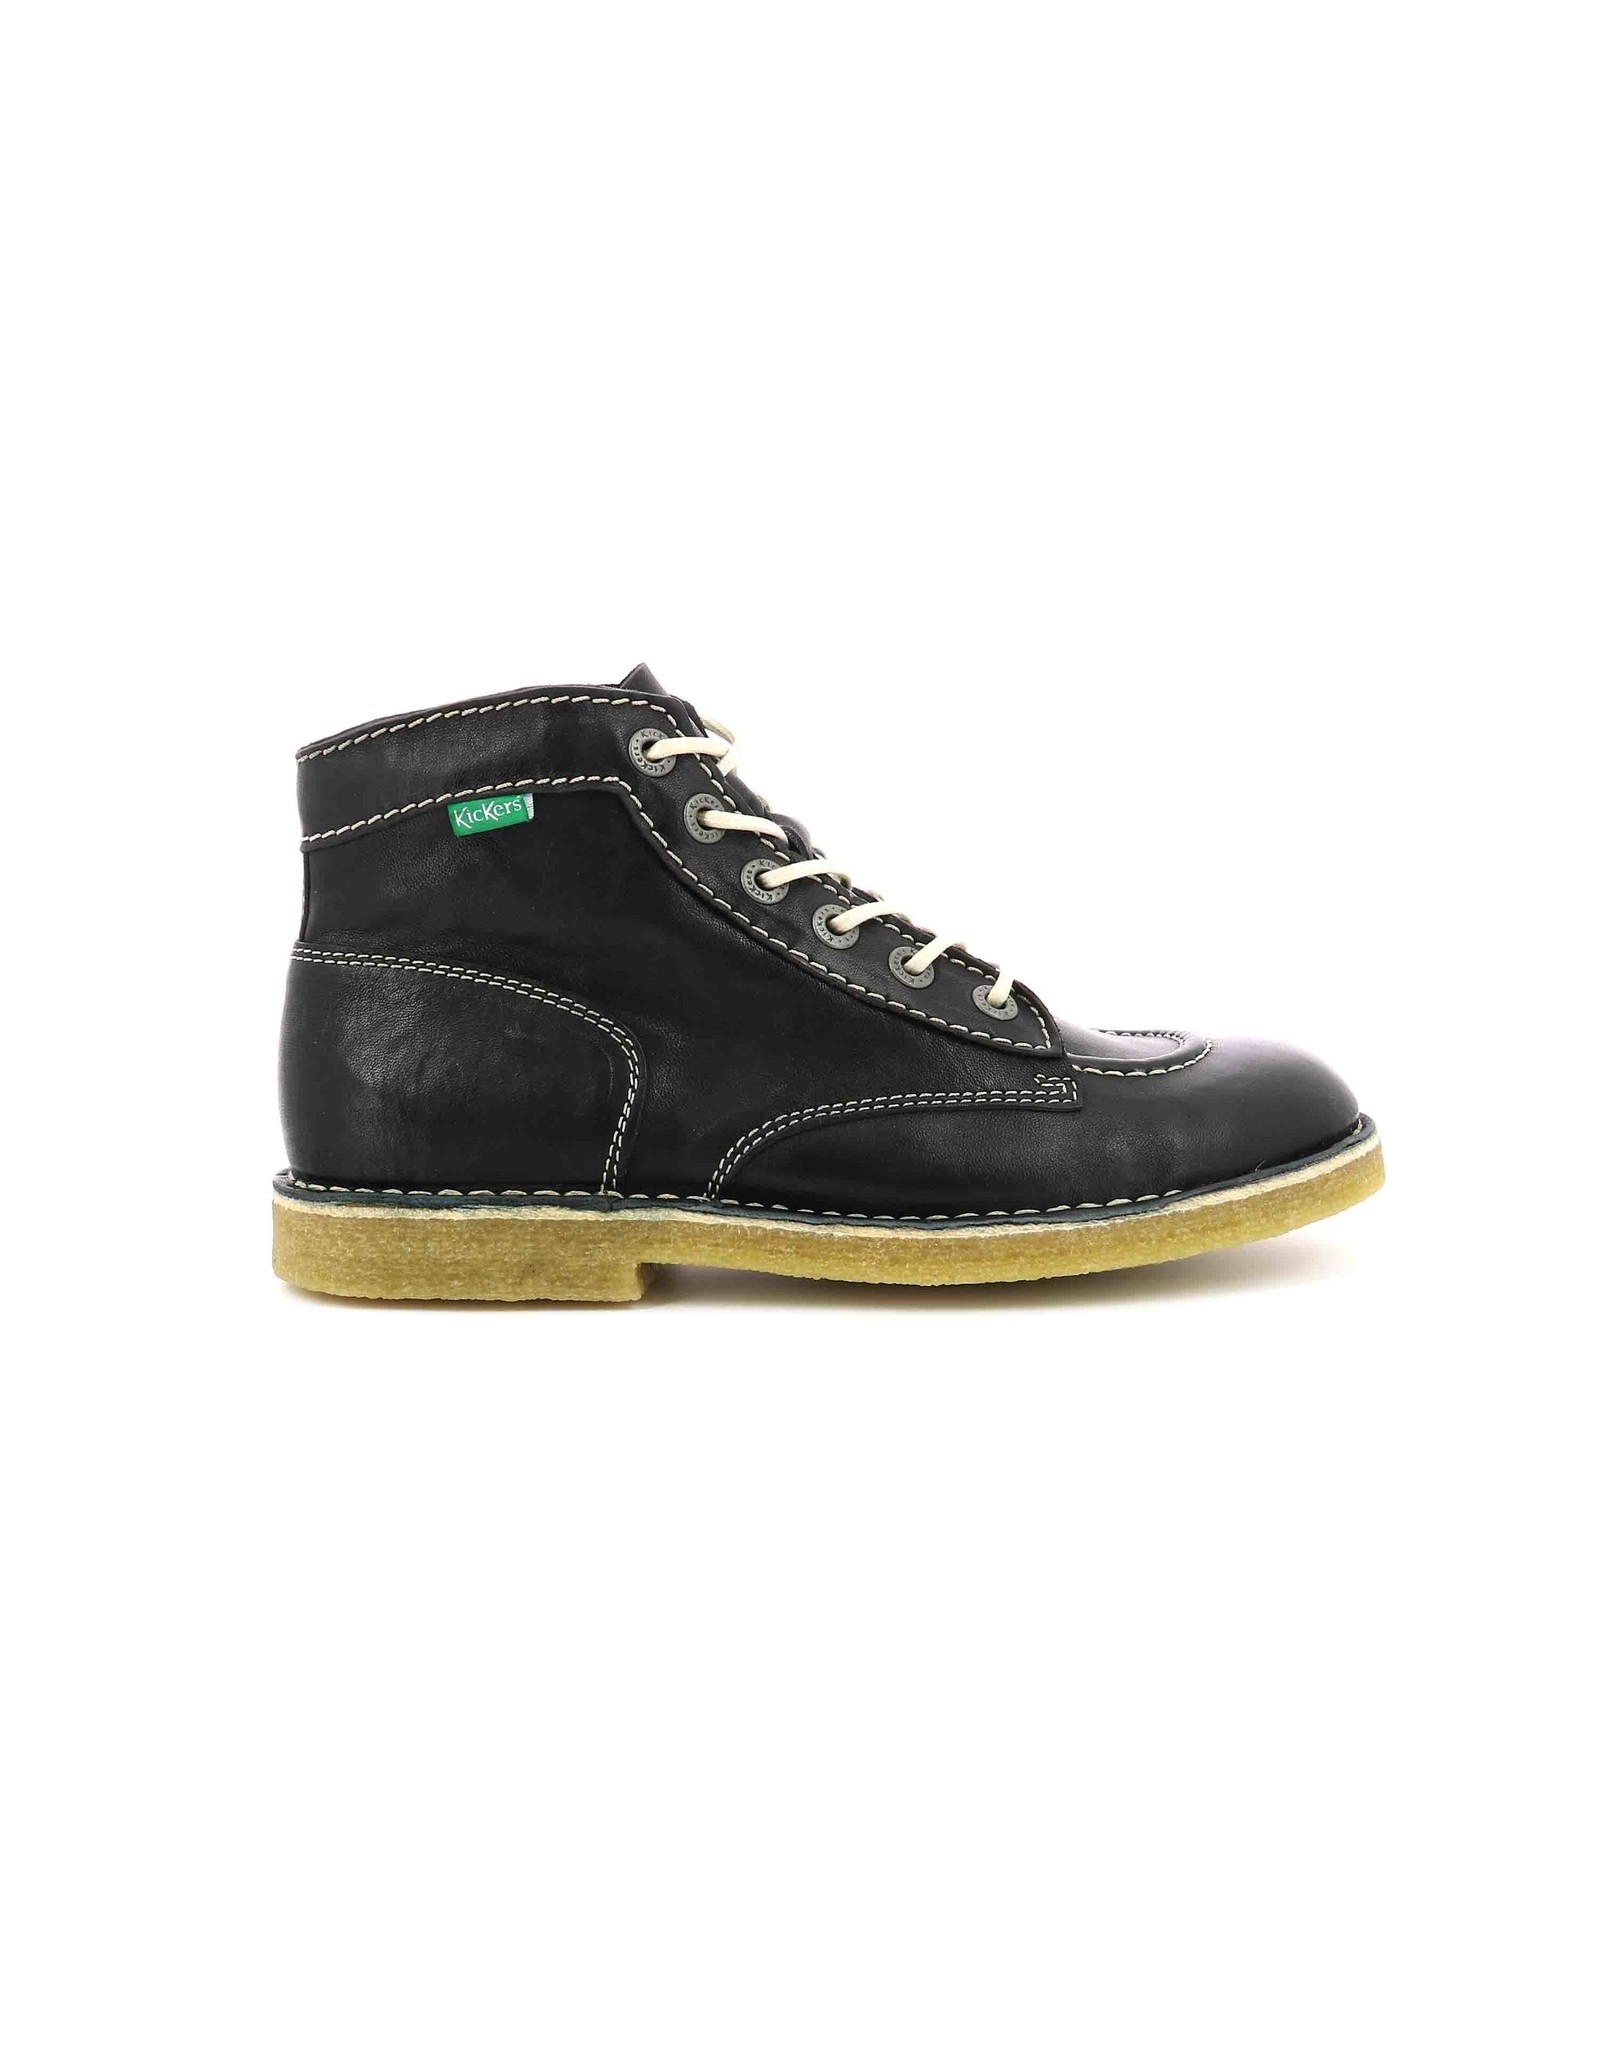 KICKERS KICK LEGEND NOIR K1980B 19E660242-50